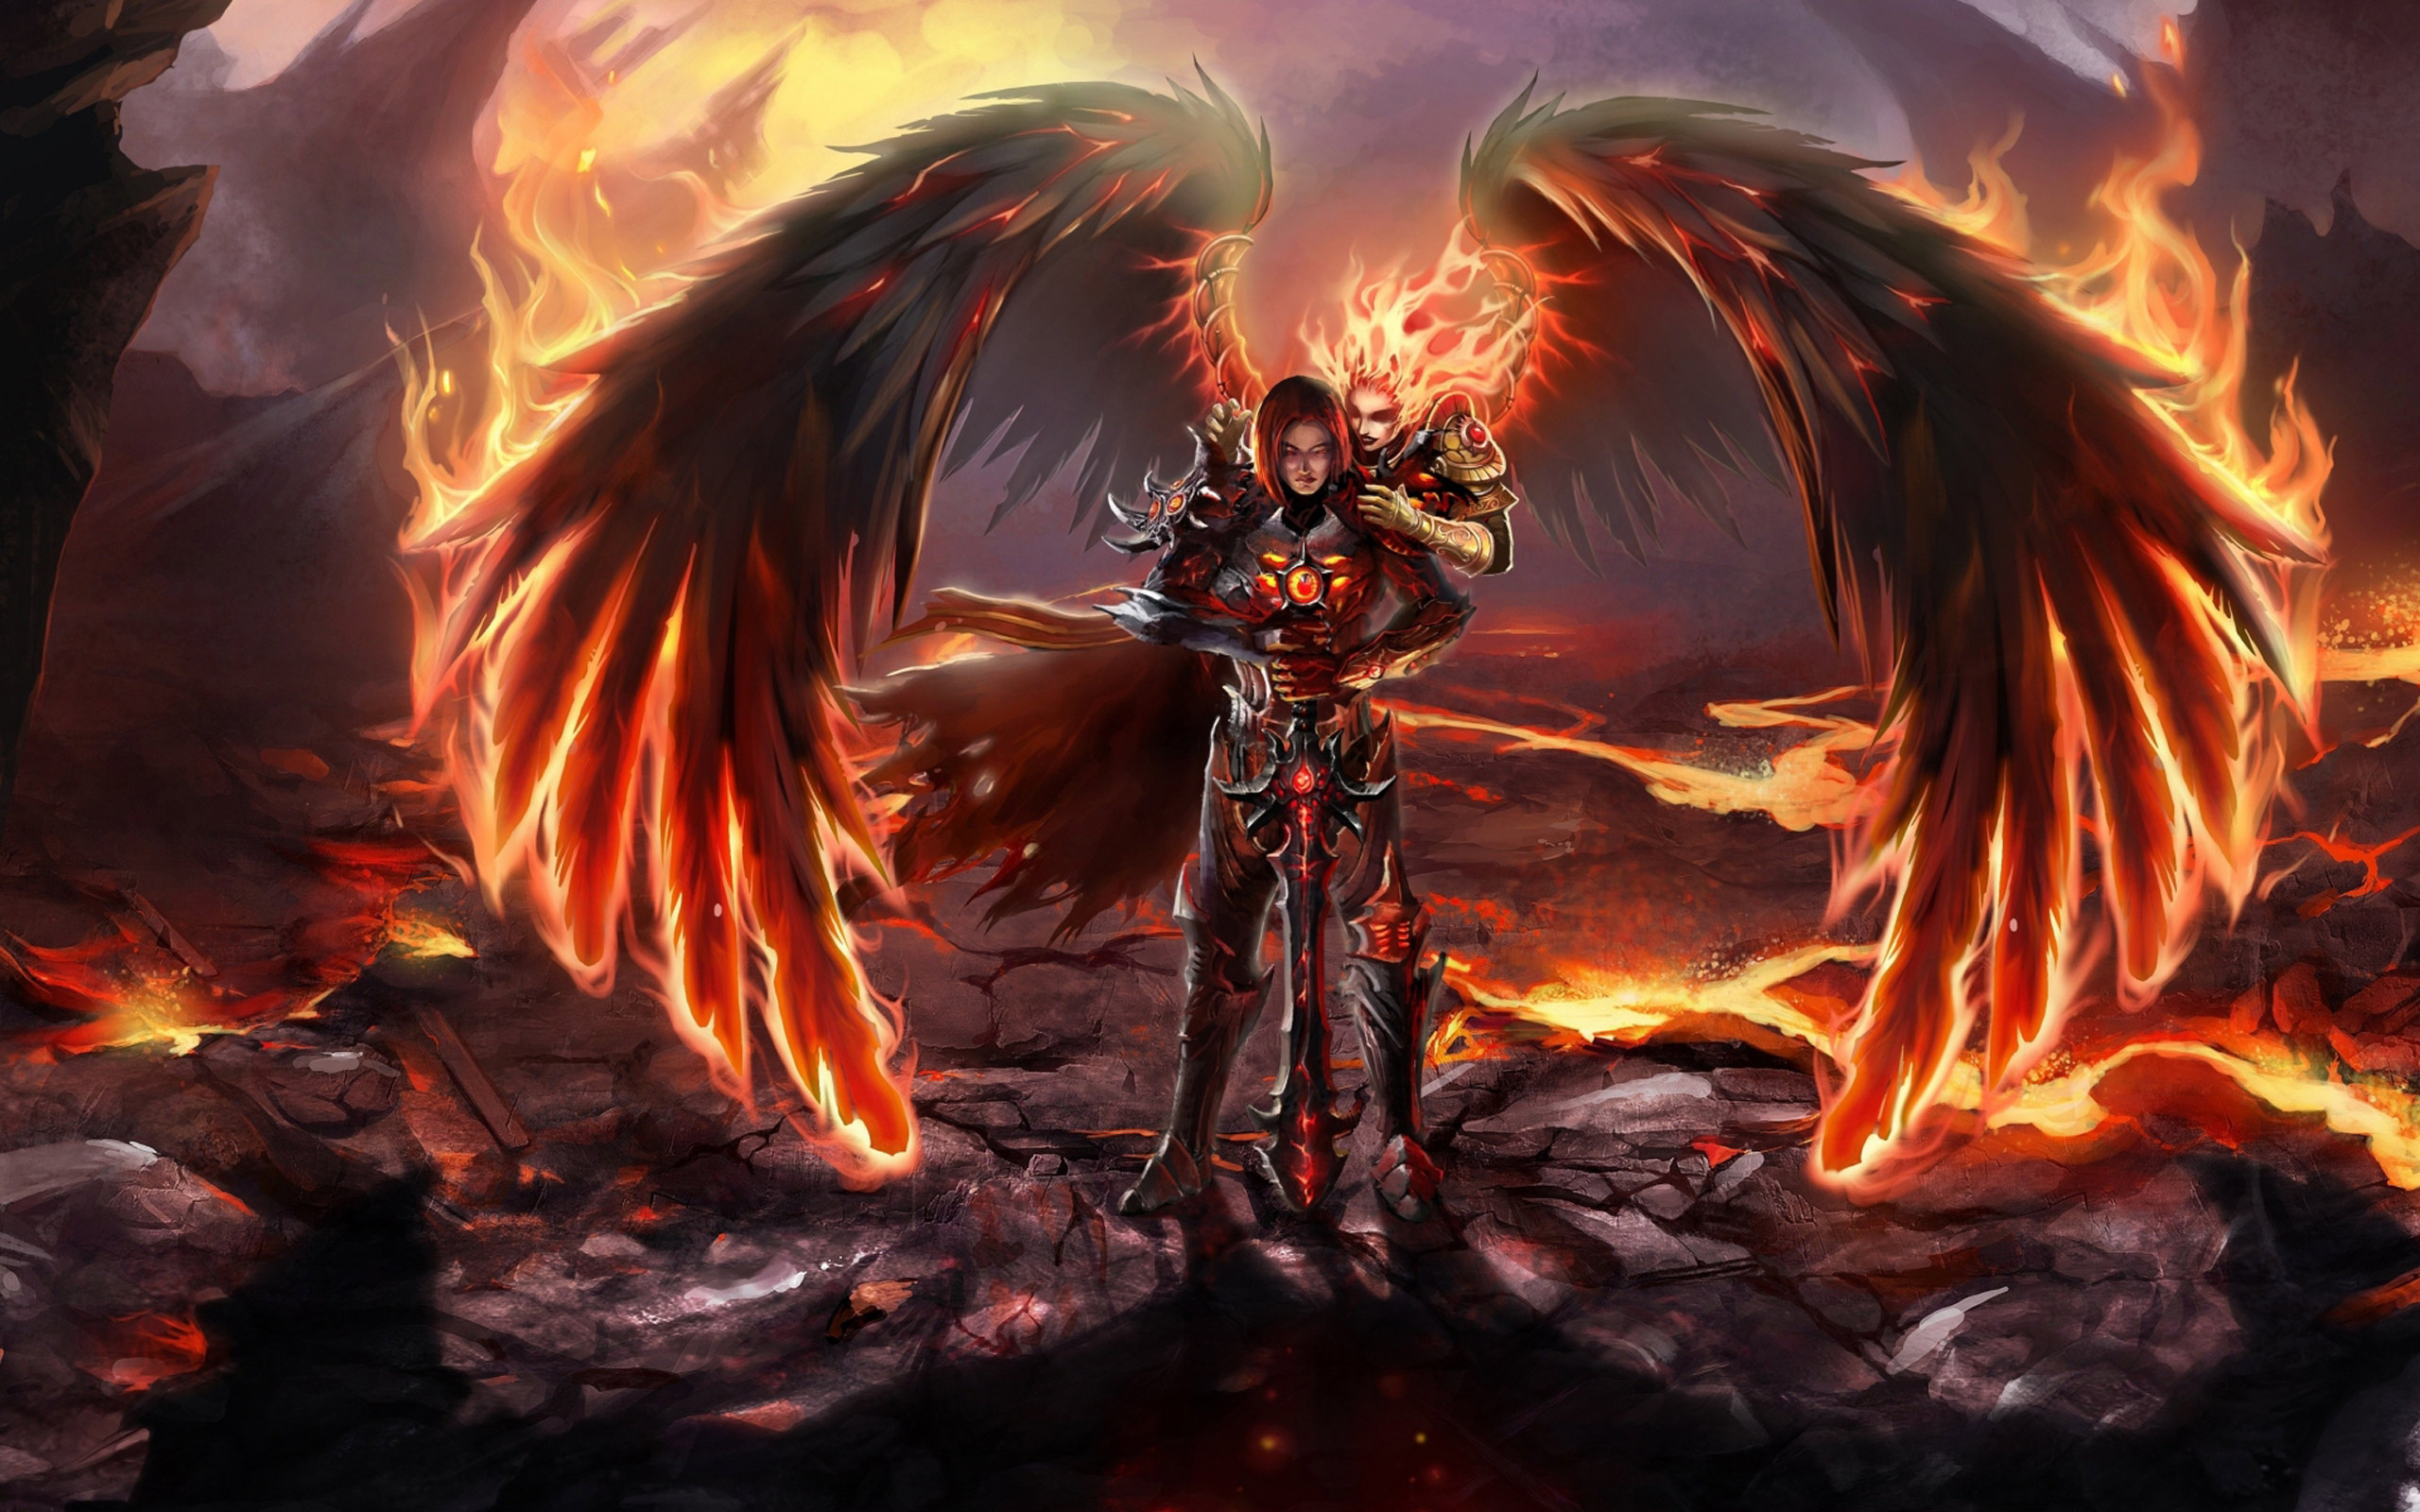 page size 2560x1600 desktop wallpaper of fantasy fire woman 2560x1600